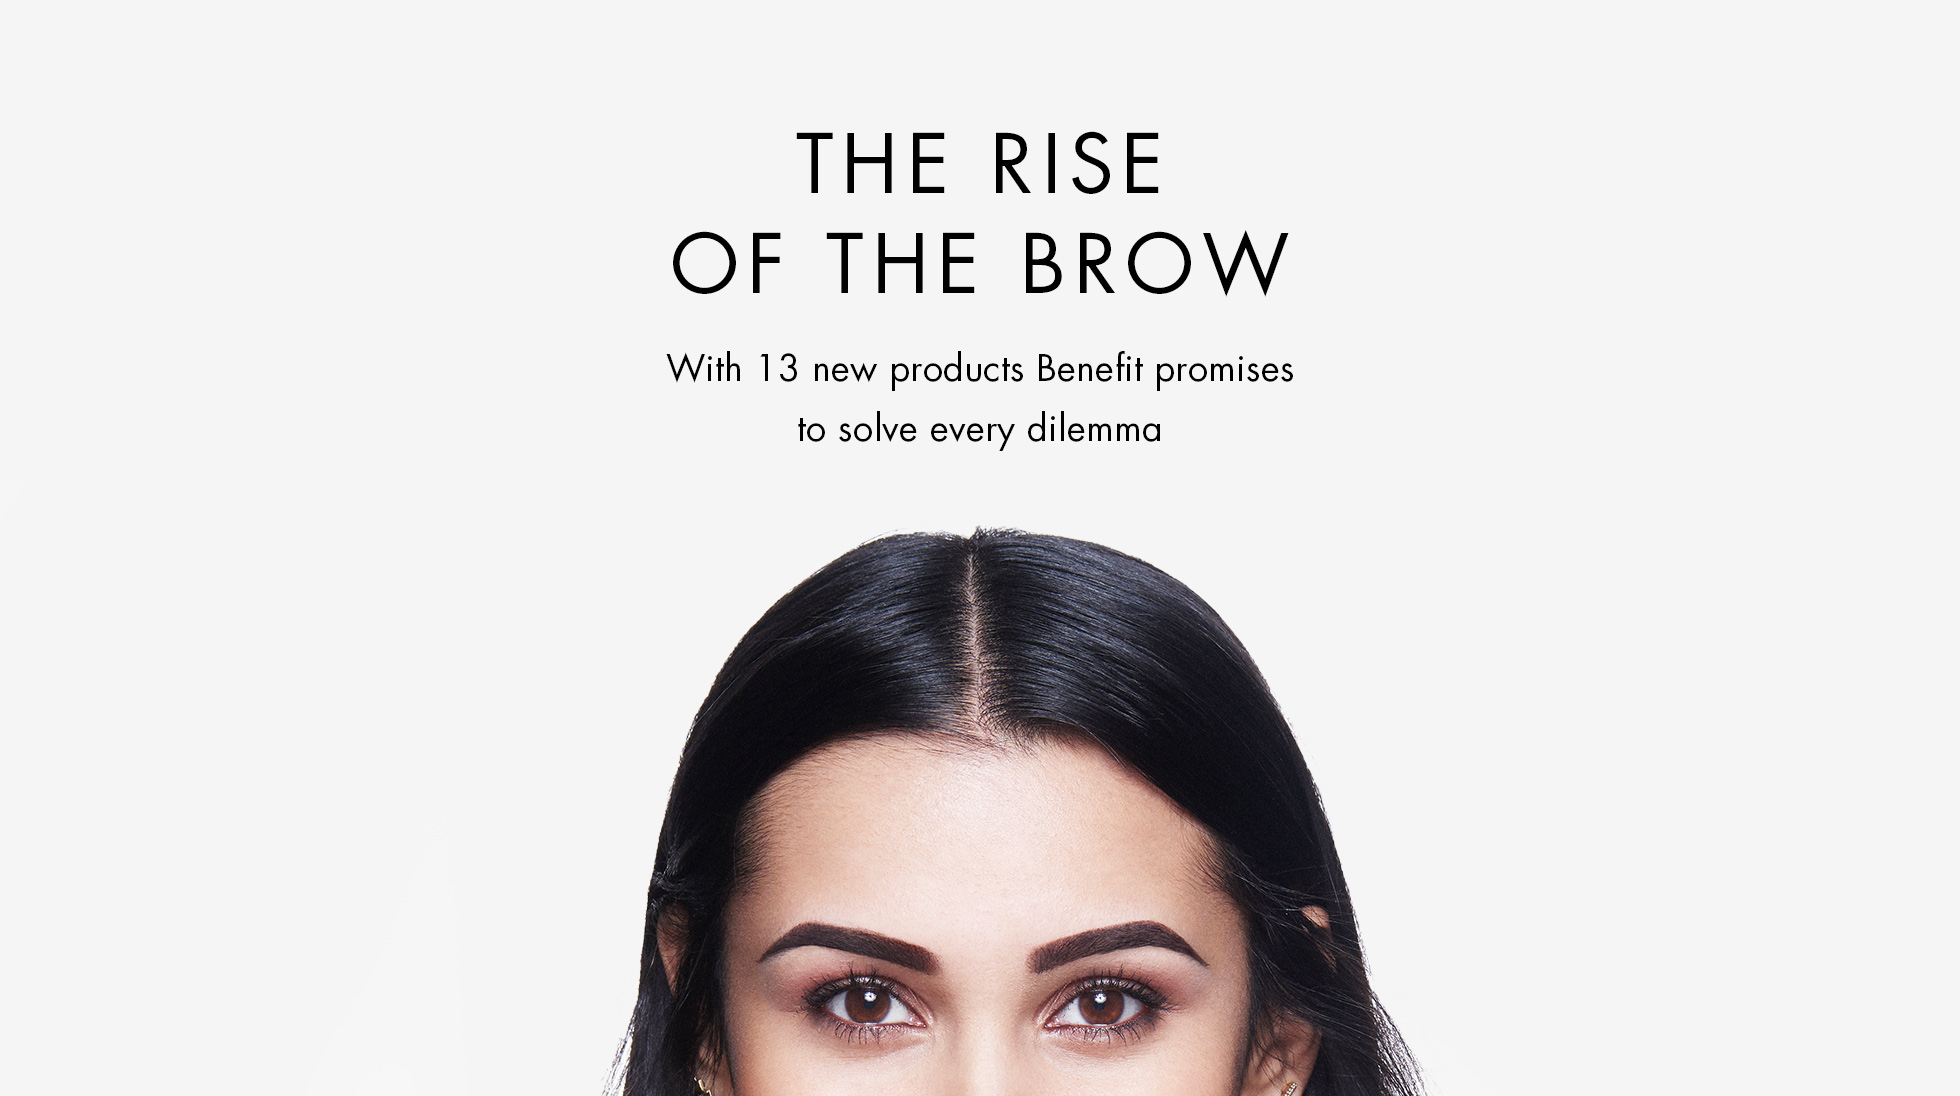 THE RISE OF THE BROW